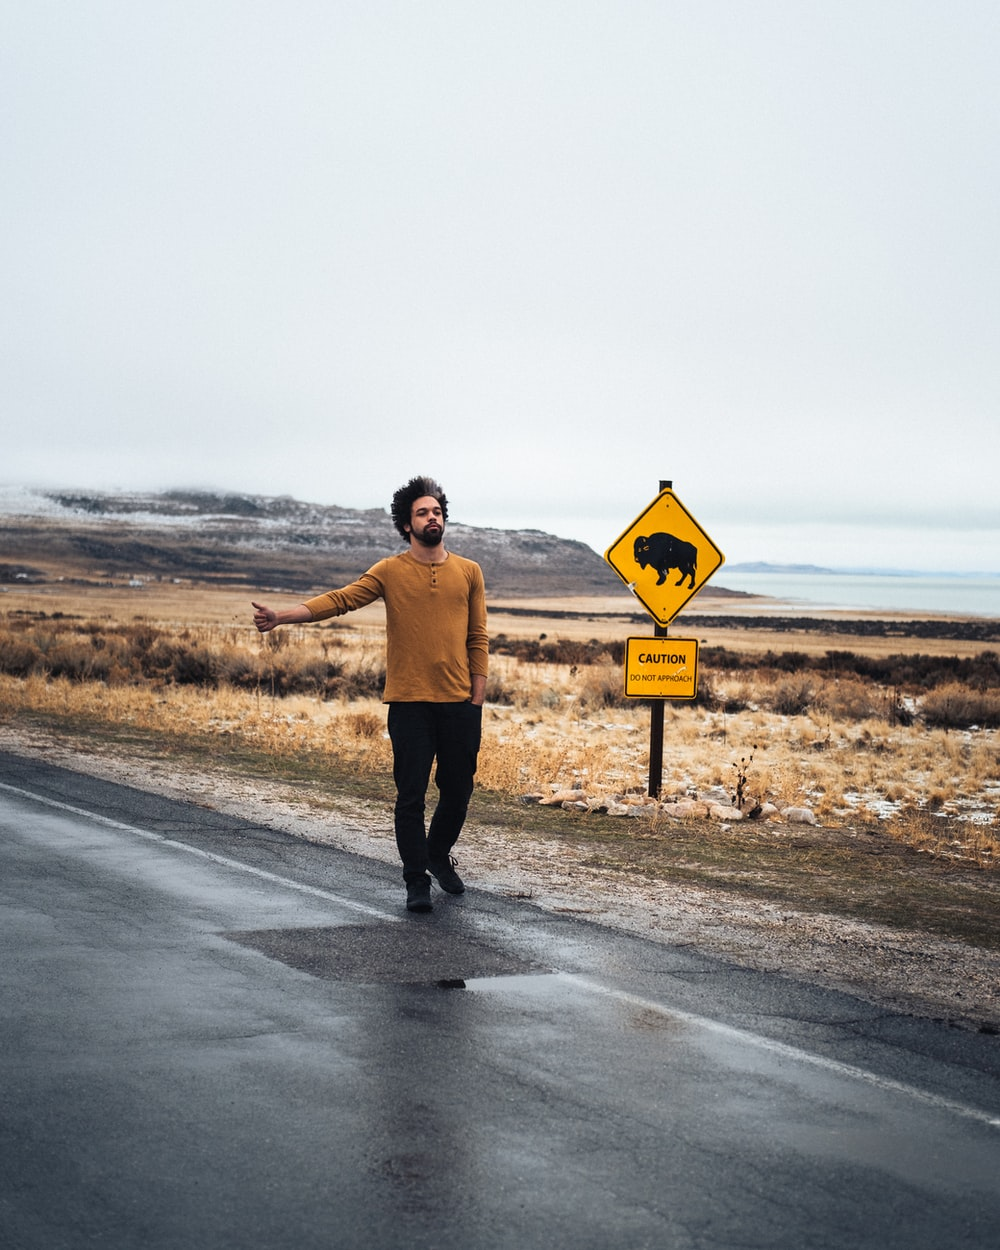 man in brown shirt and black pants standing on road